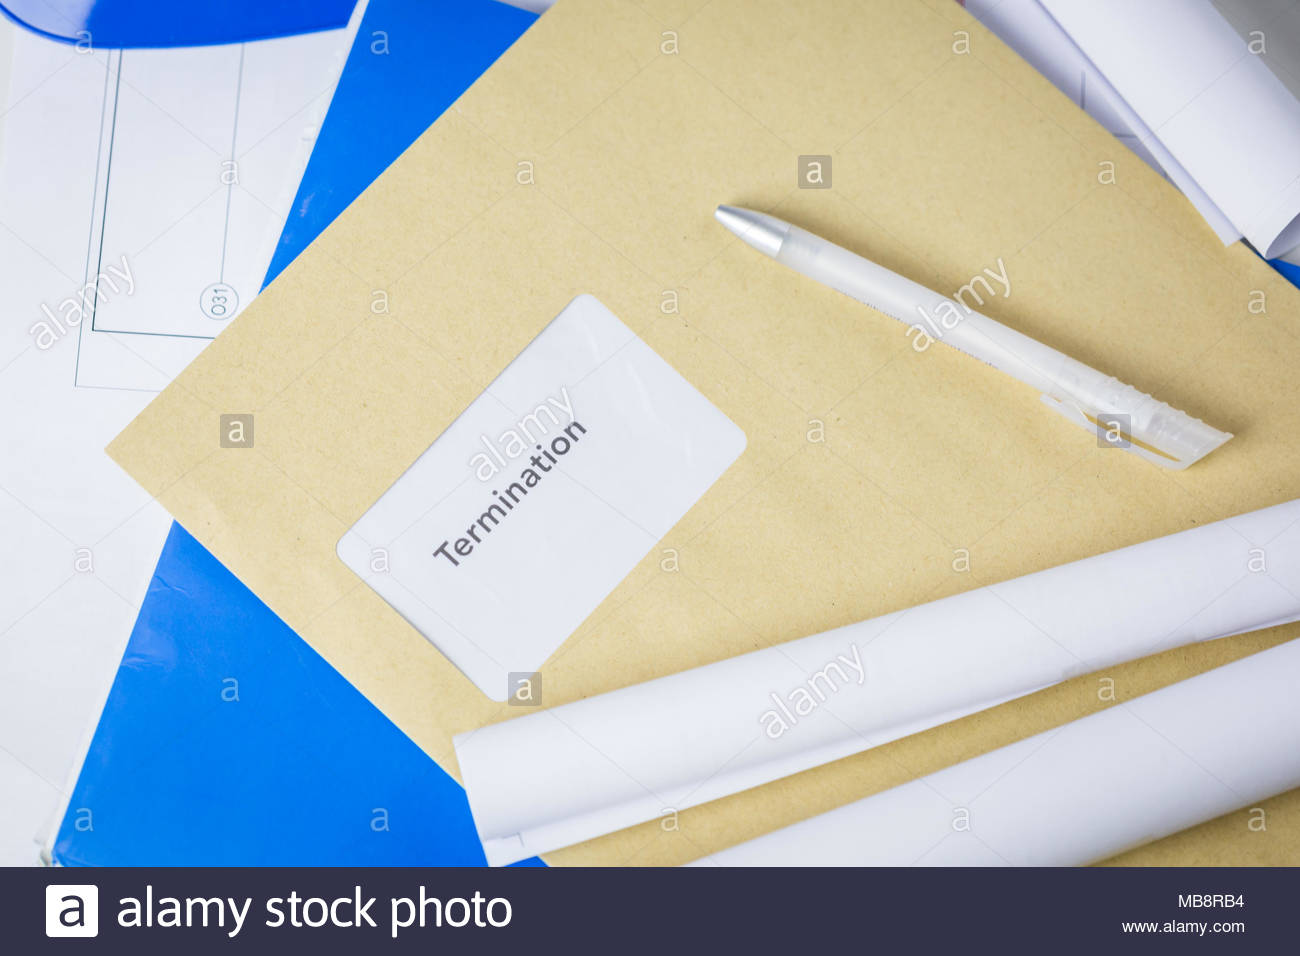 Termination notice lying on an architects desk - Stock Image